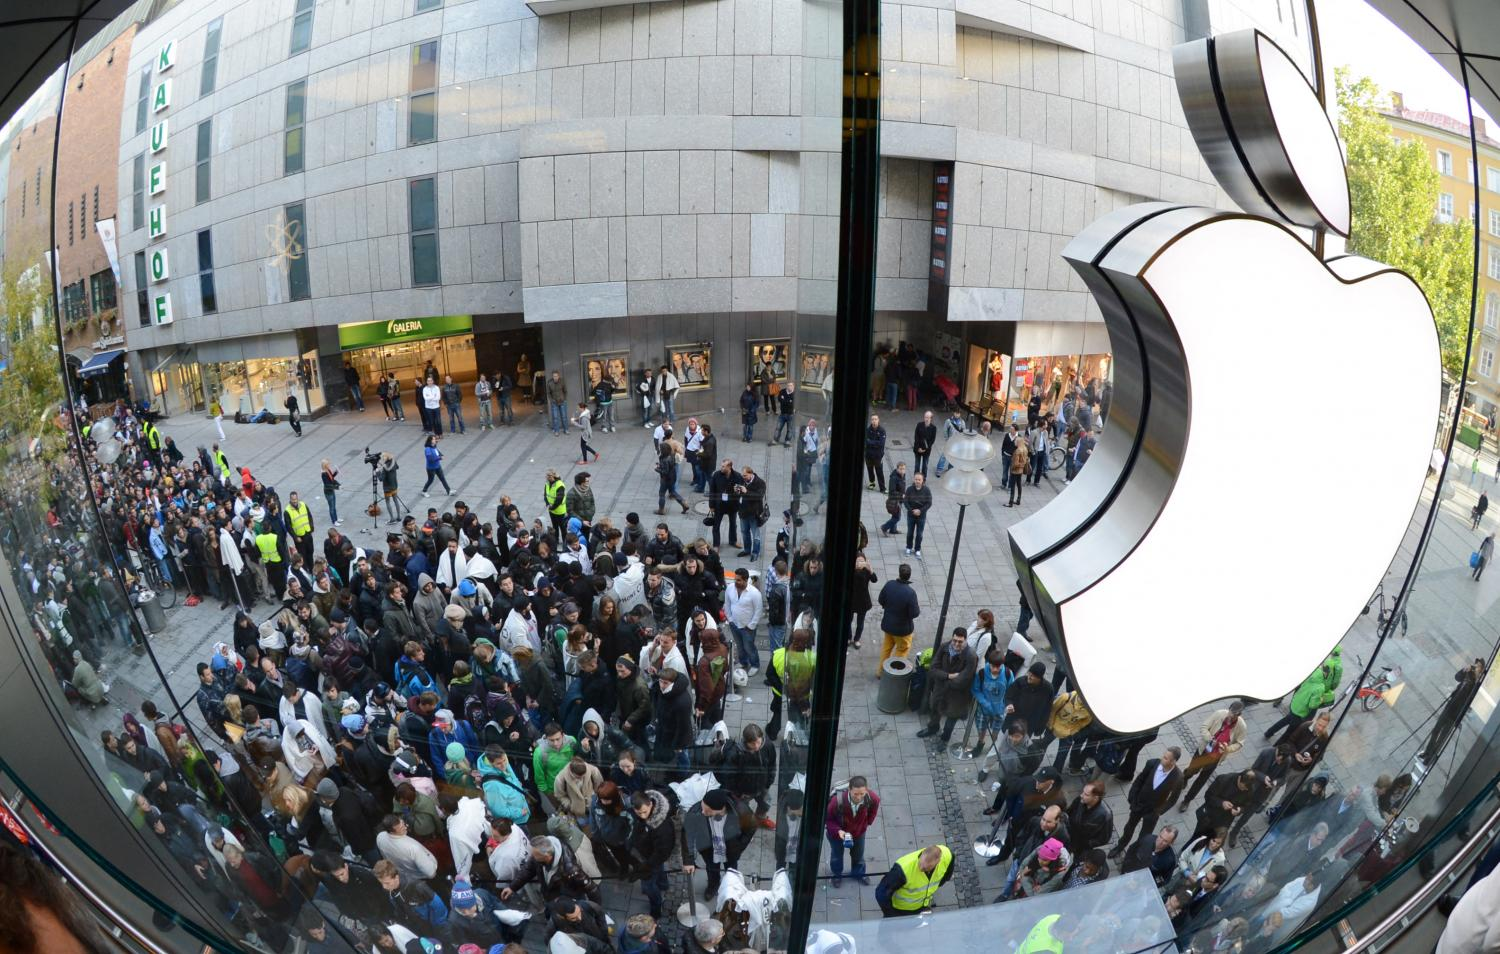 This file photo shows customers queueing to enter the Apple Store in Munich.AFP